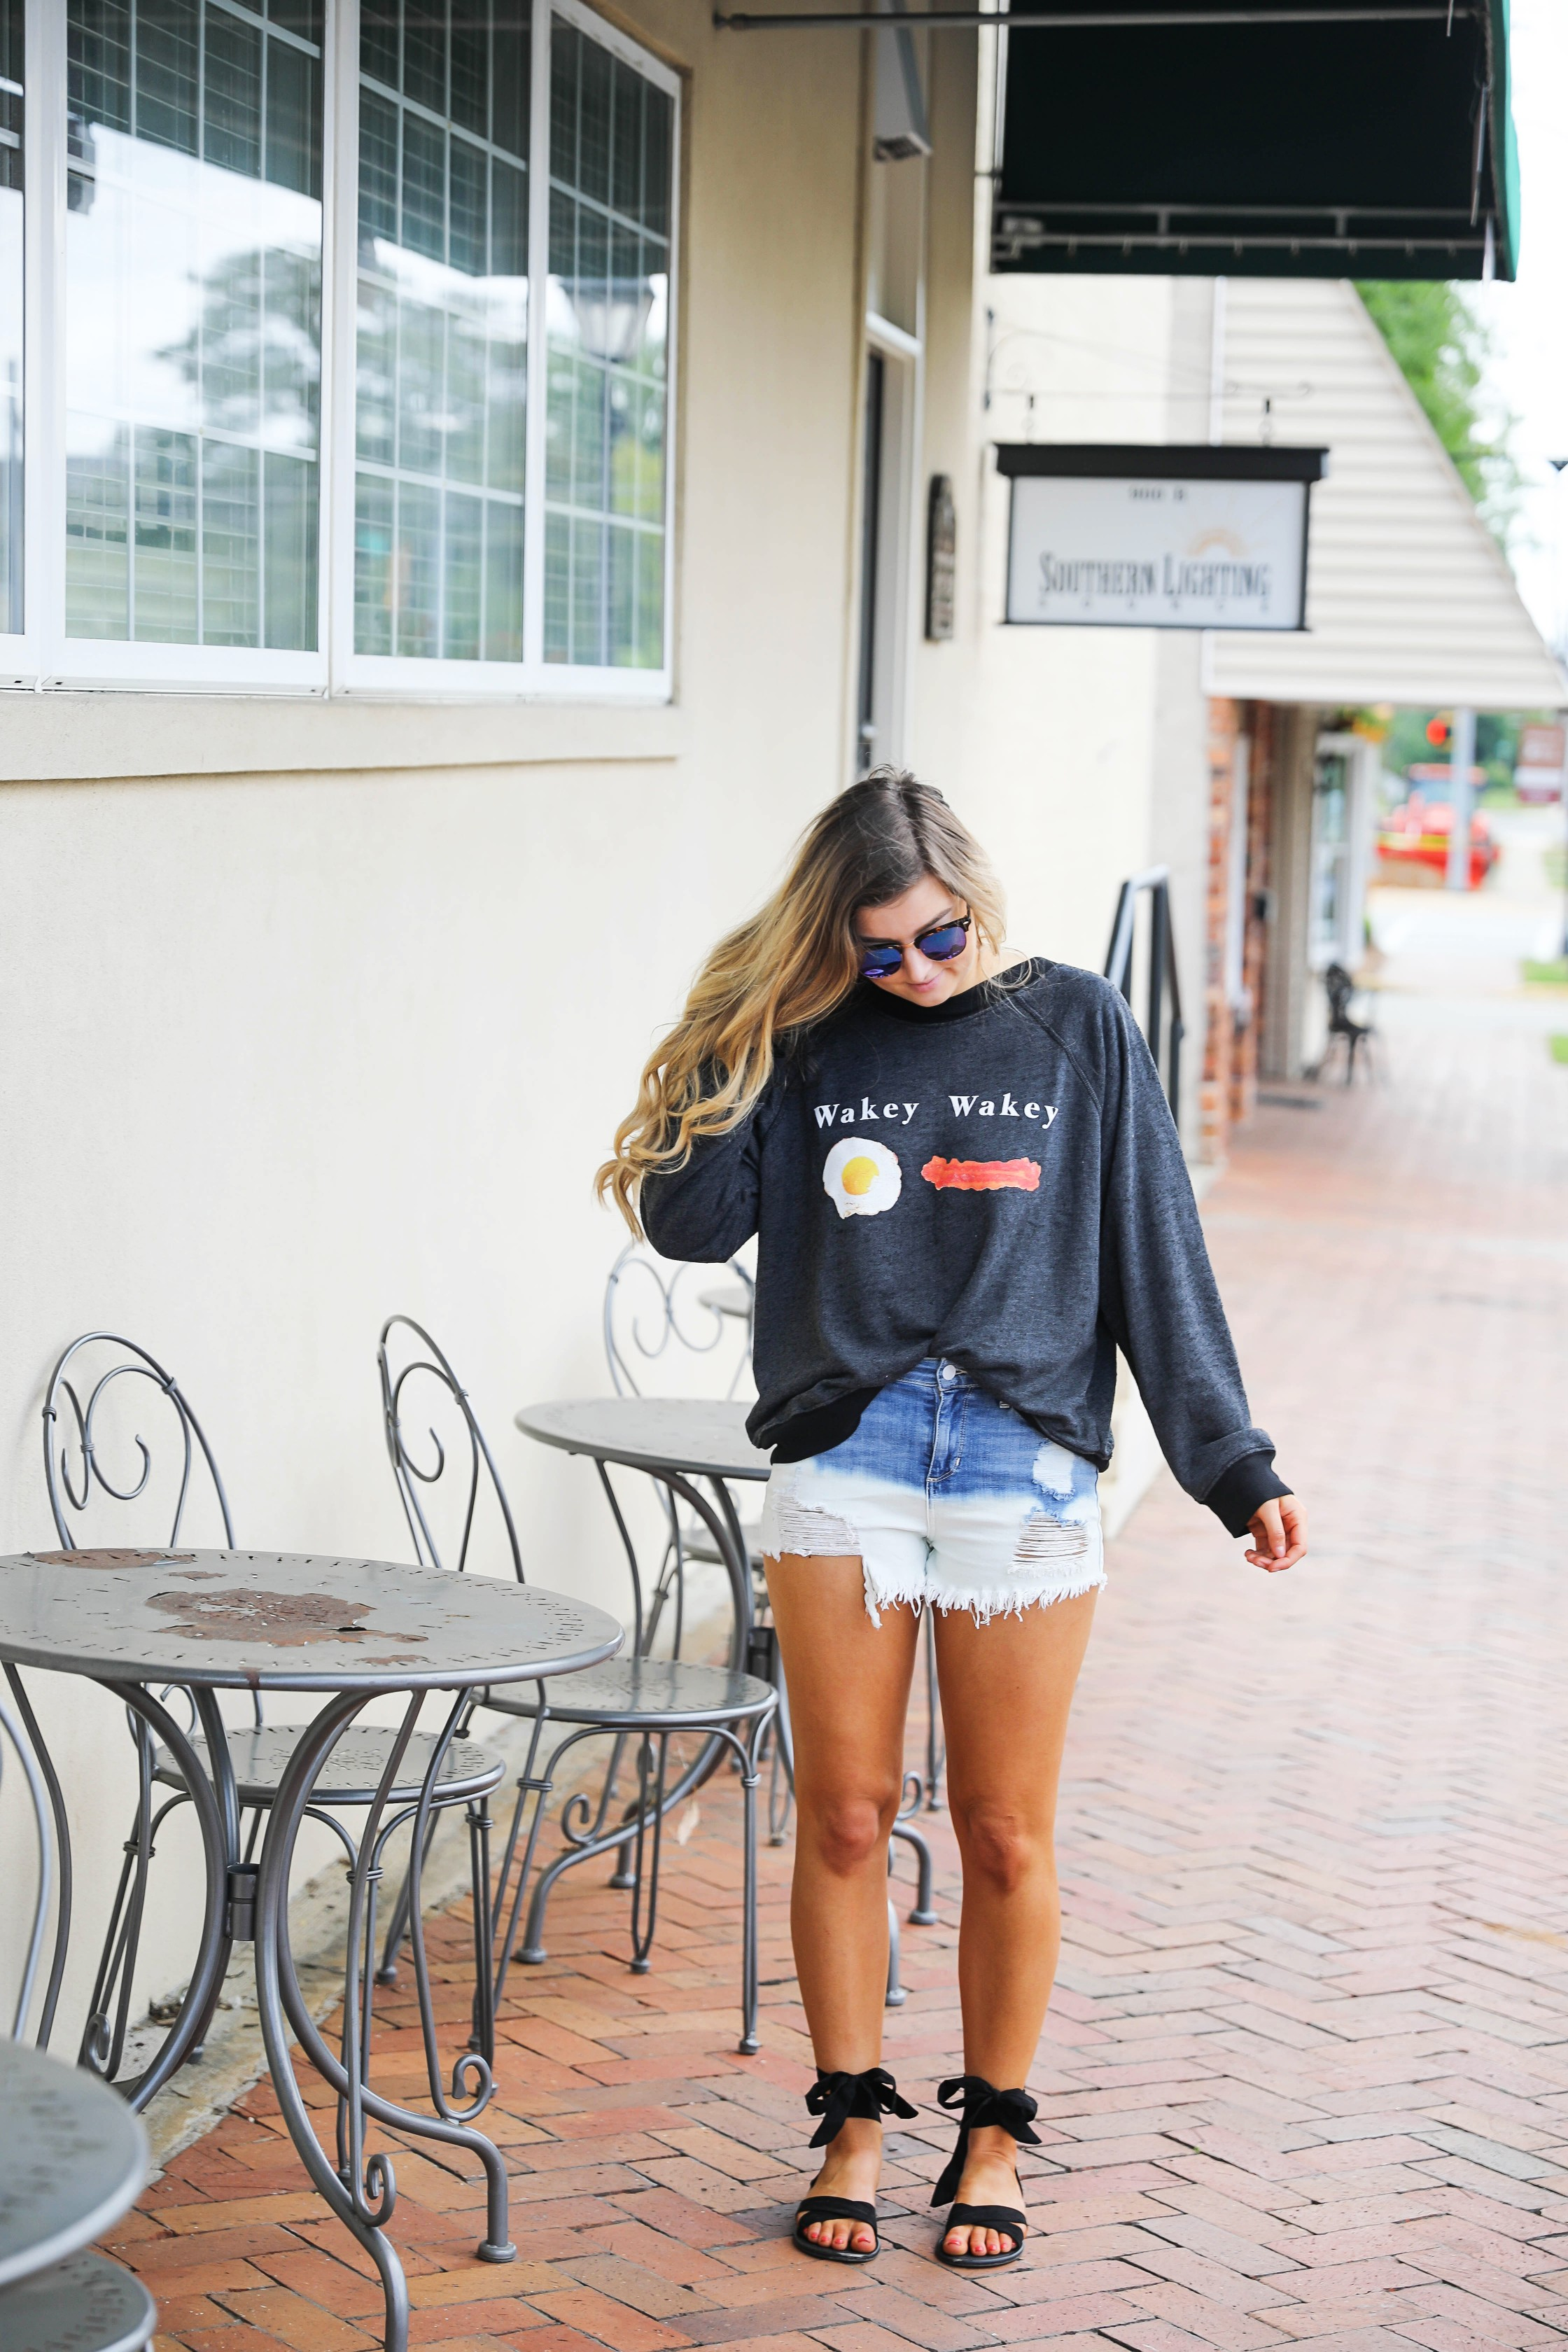 Wakey wakey eggs and bacon Wild Fox sweatshirt tee styled on Daily Dose of Charm by Lauren Lindmark dailydoseofcharm.com